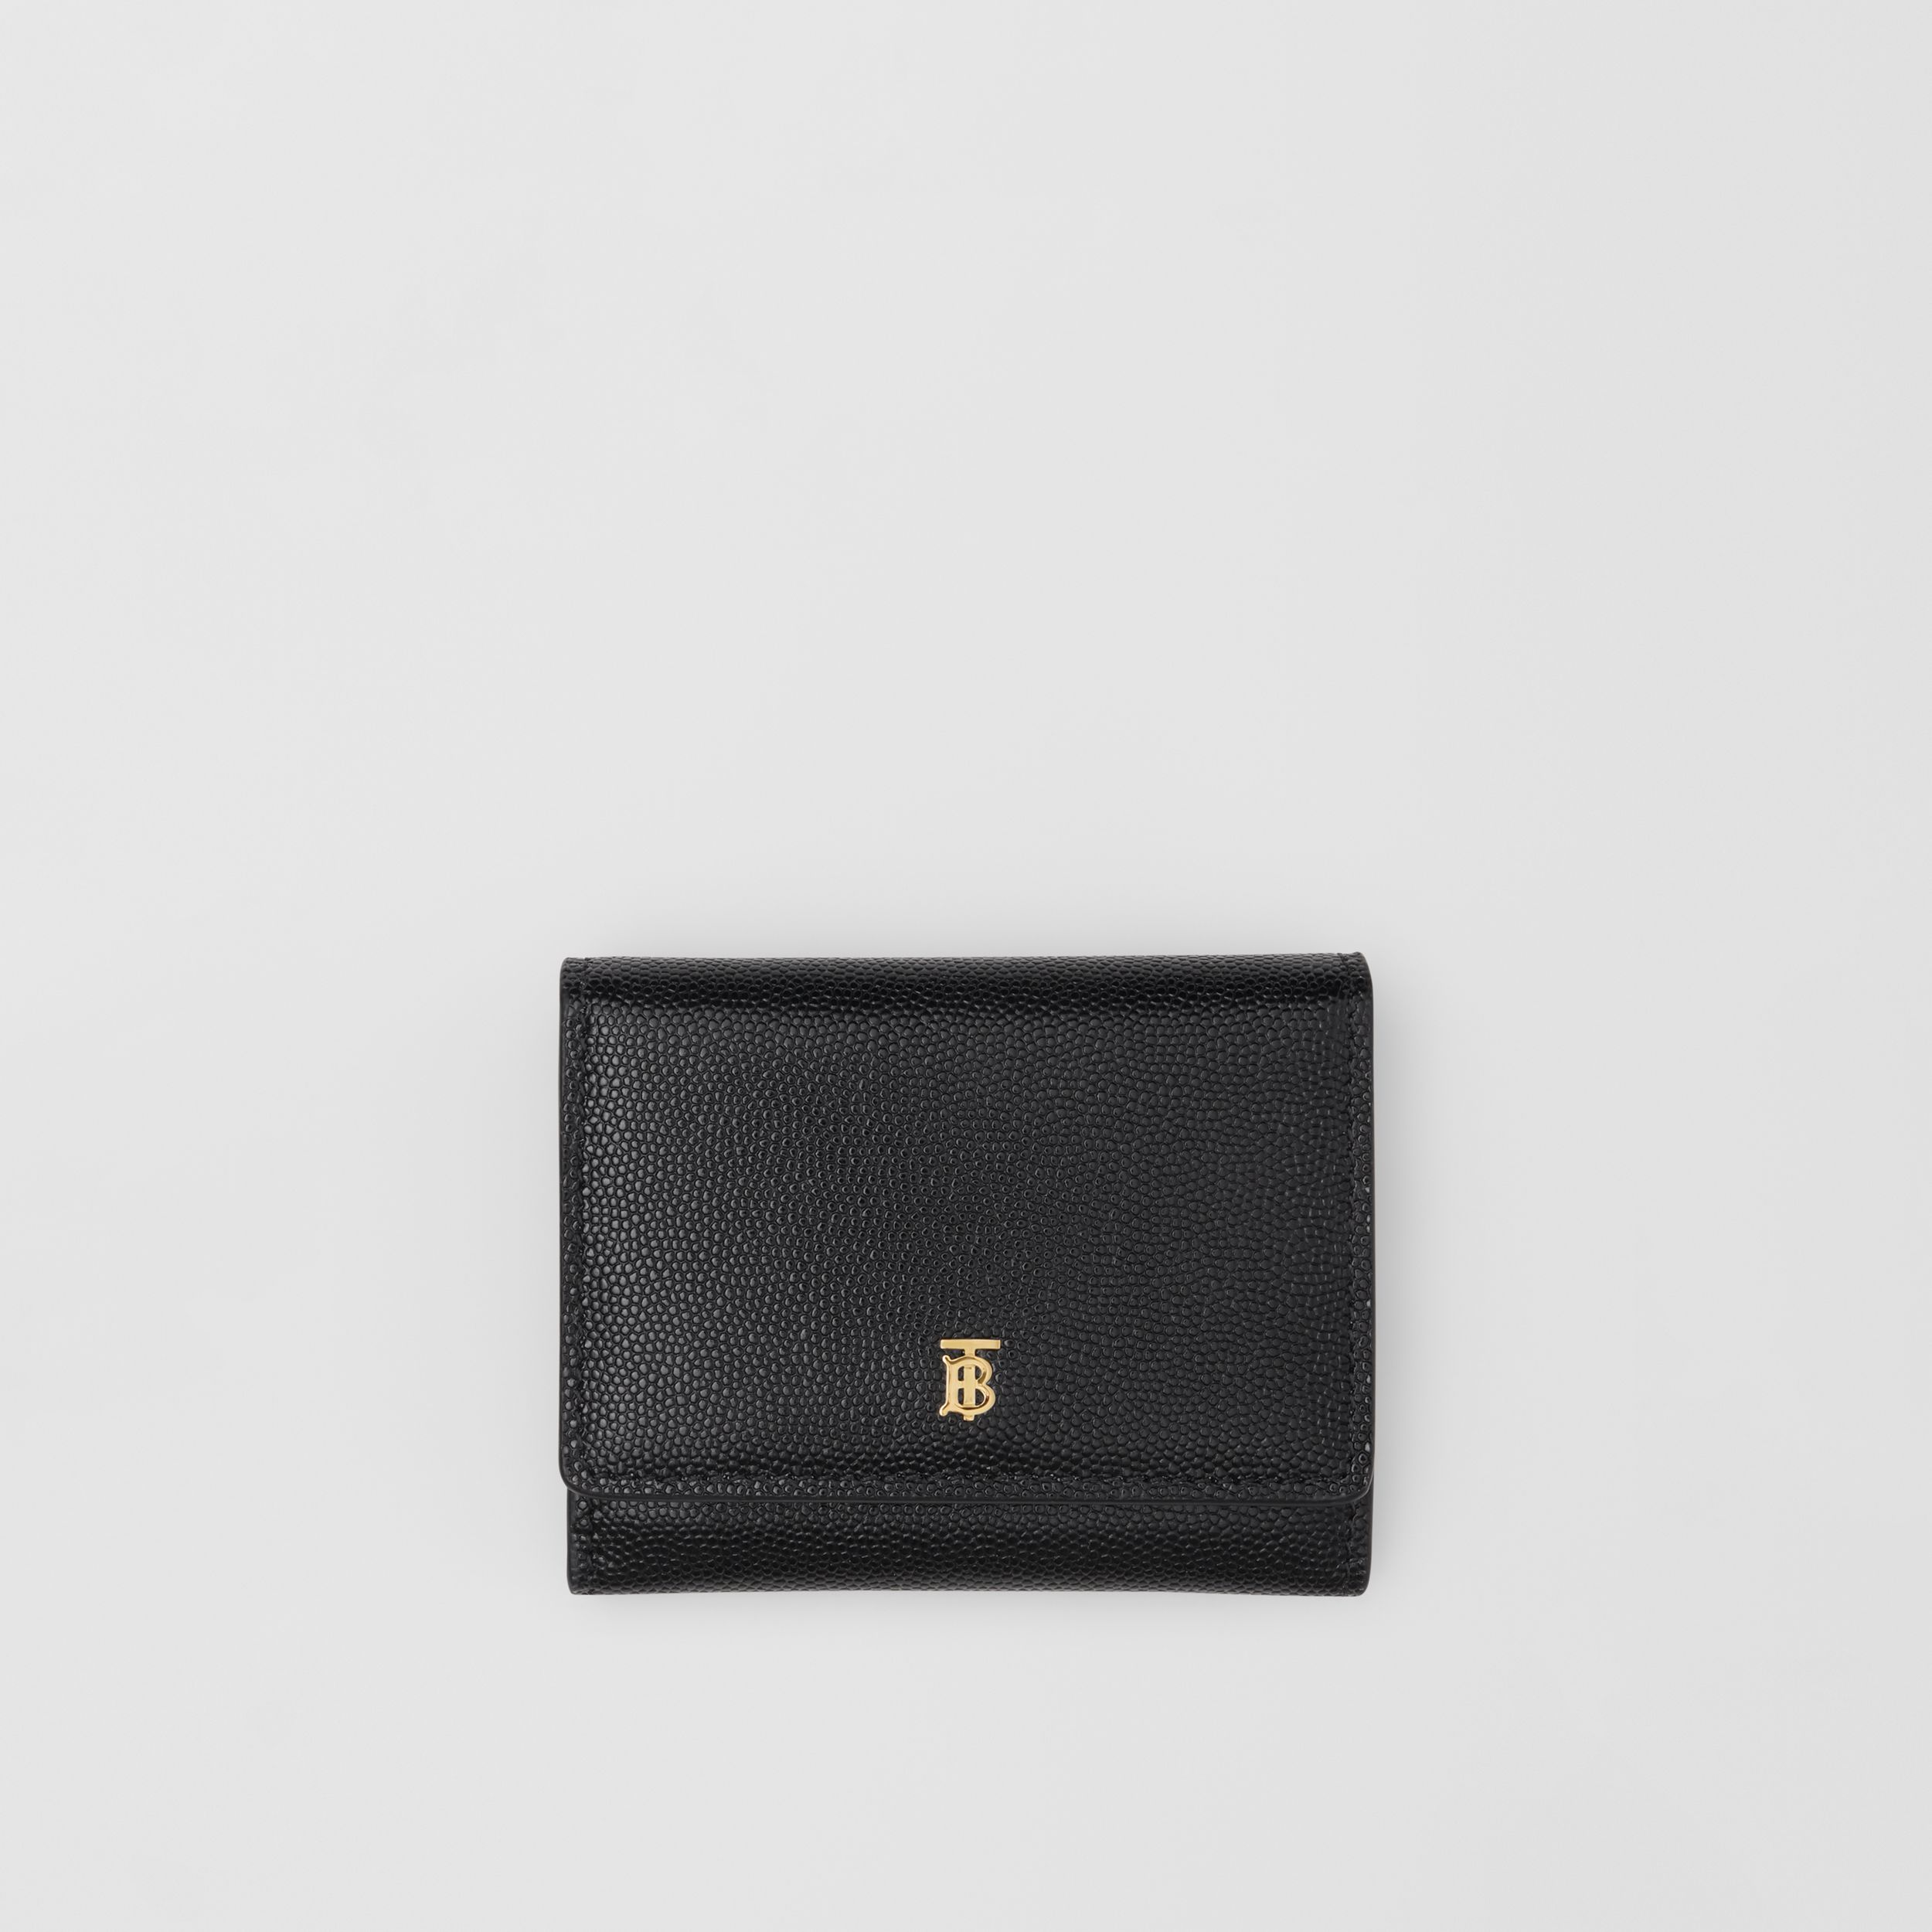 Grainy Leather ID Card Case in Black - Women | Burberry Singapore - 1